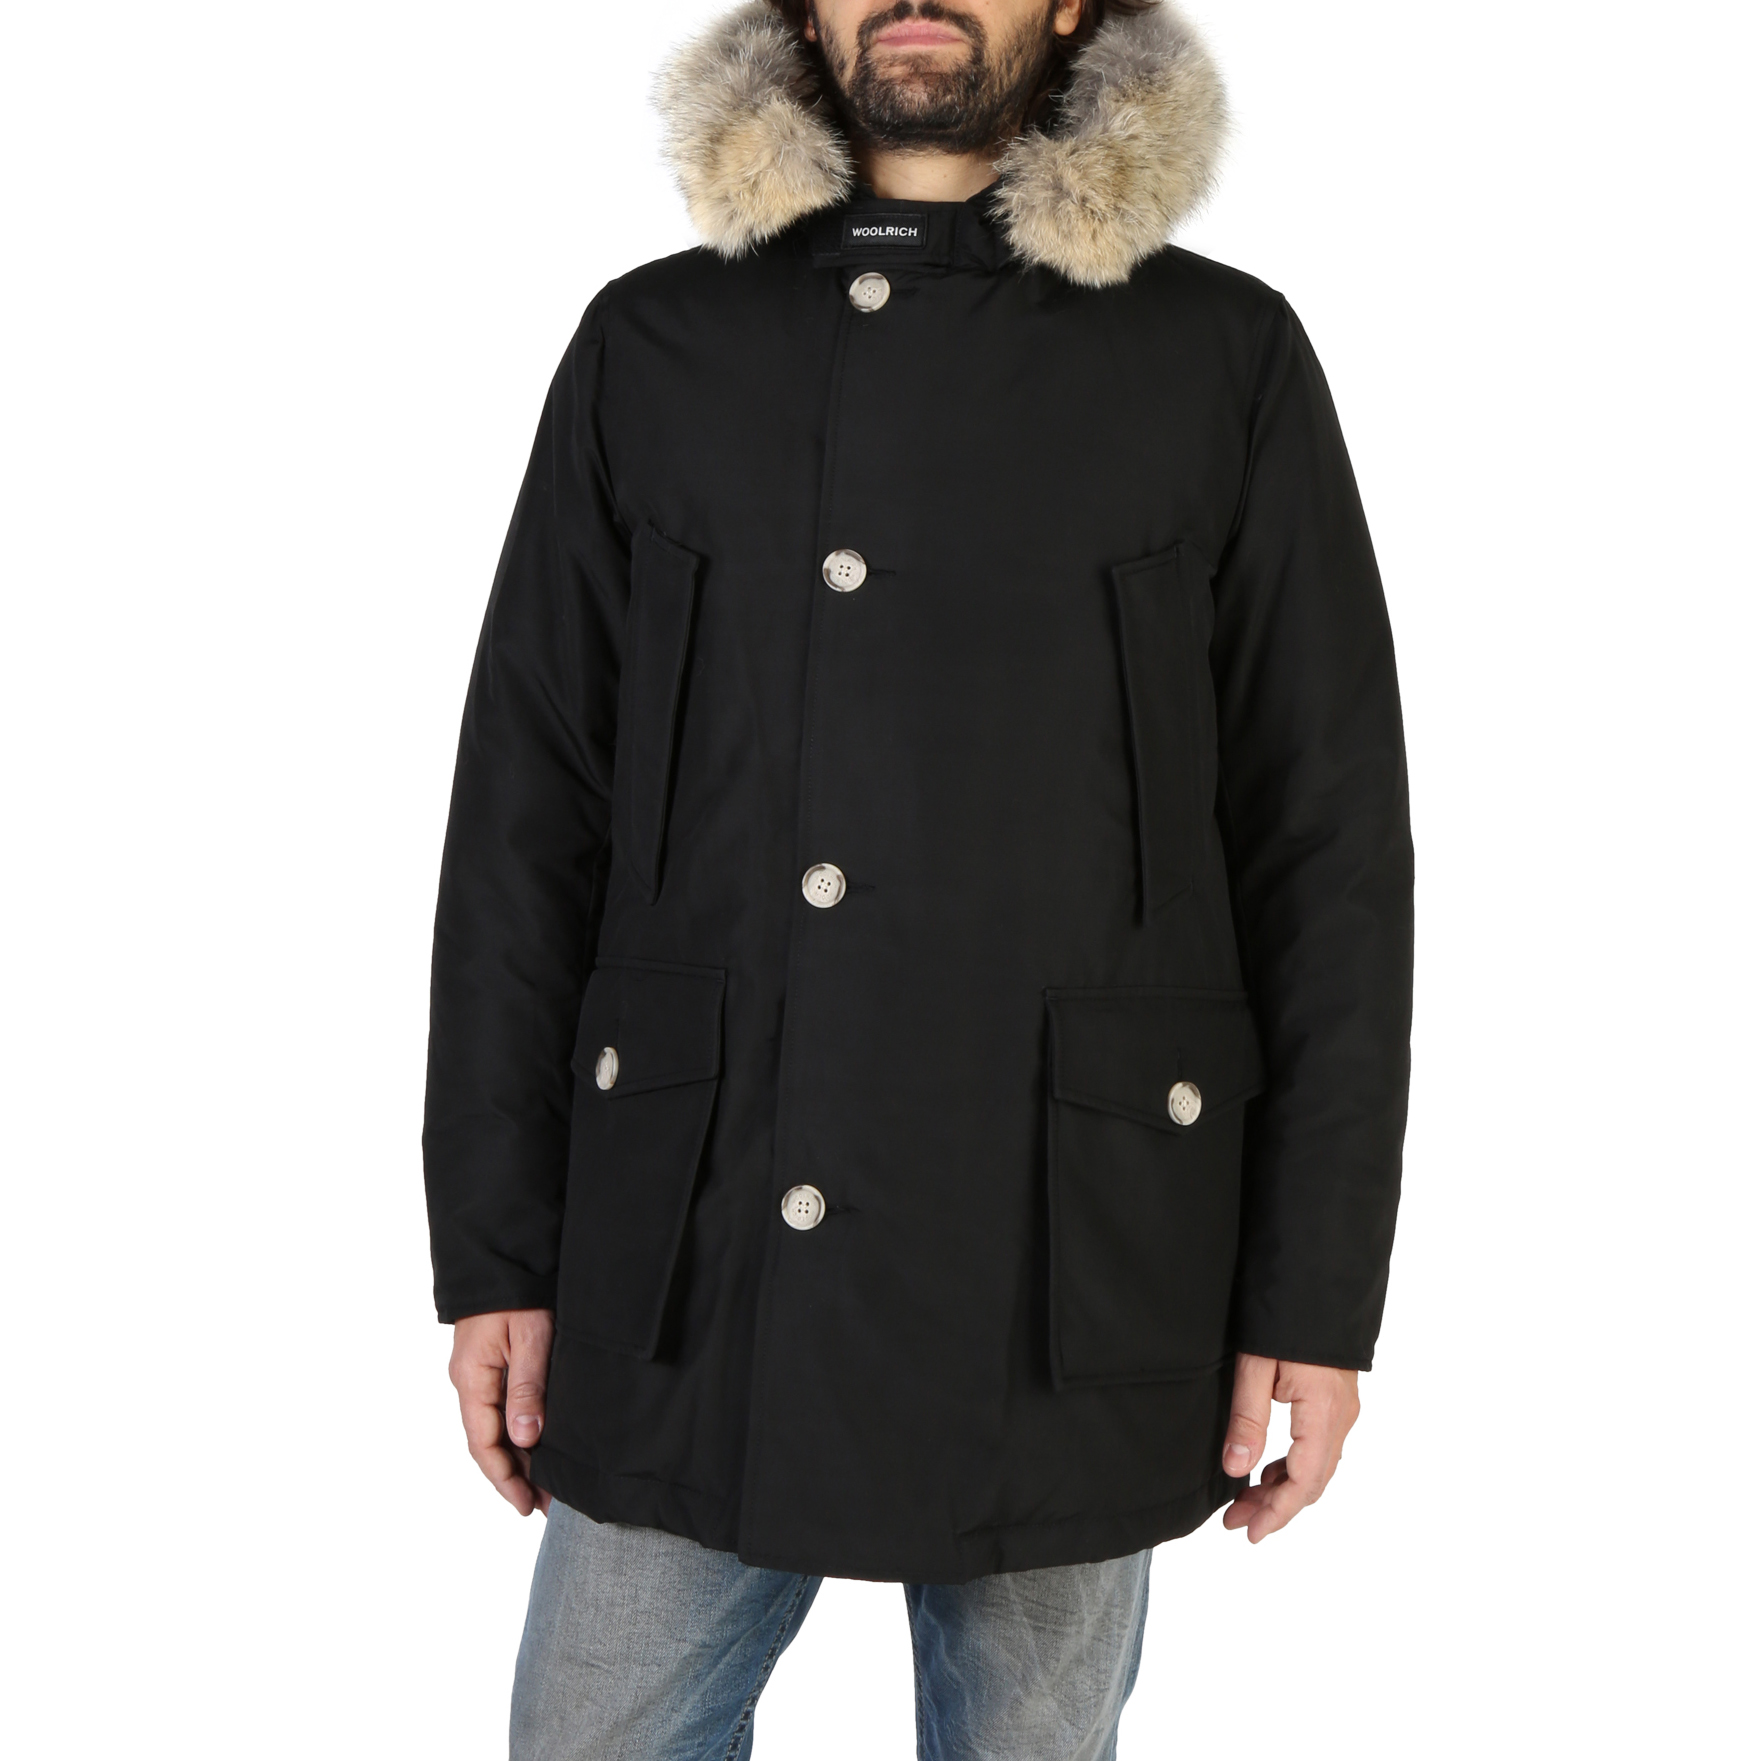 Giacche Woolrich WOCPS2880 Uomo Nero 104049